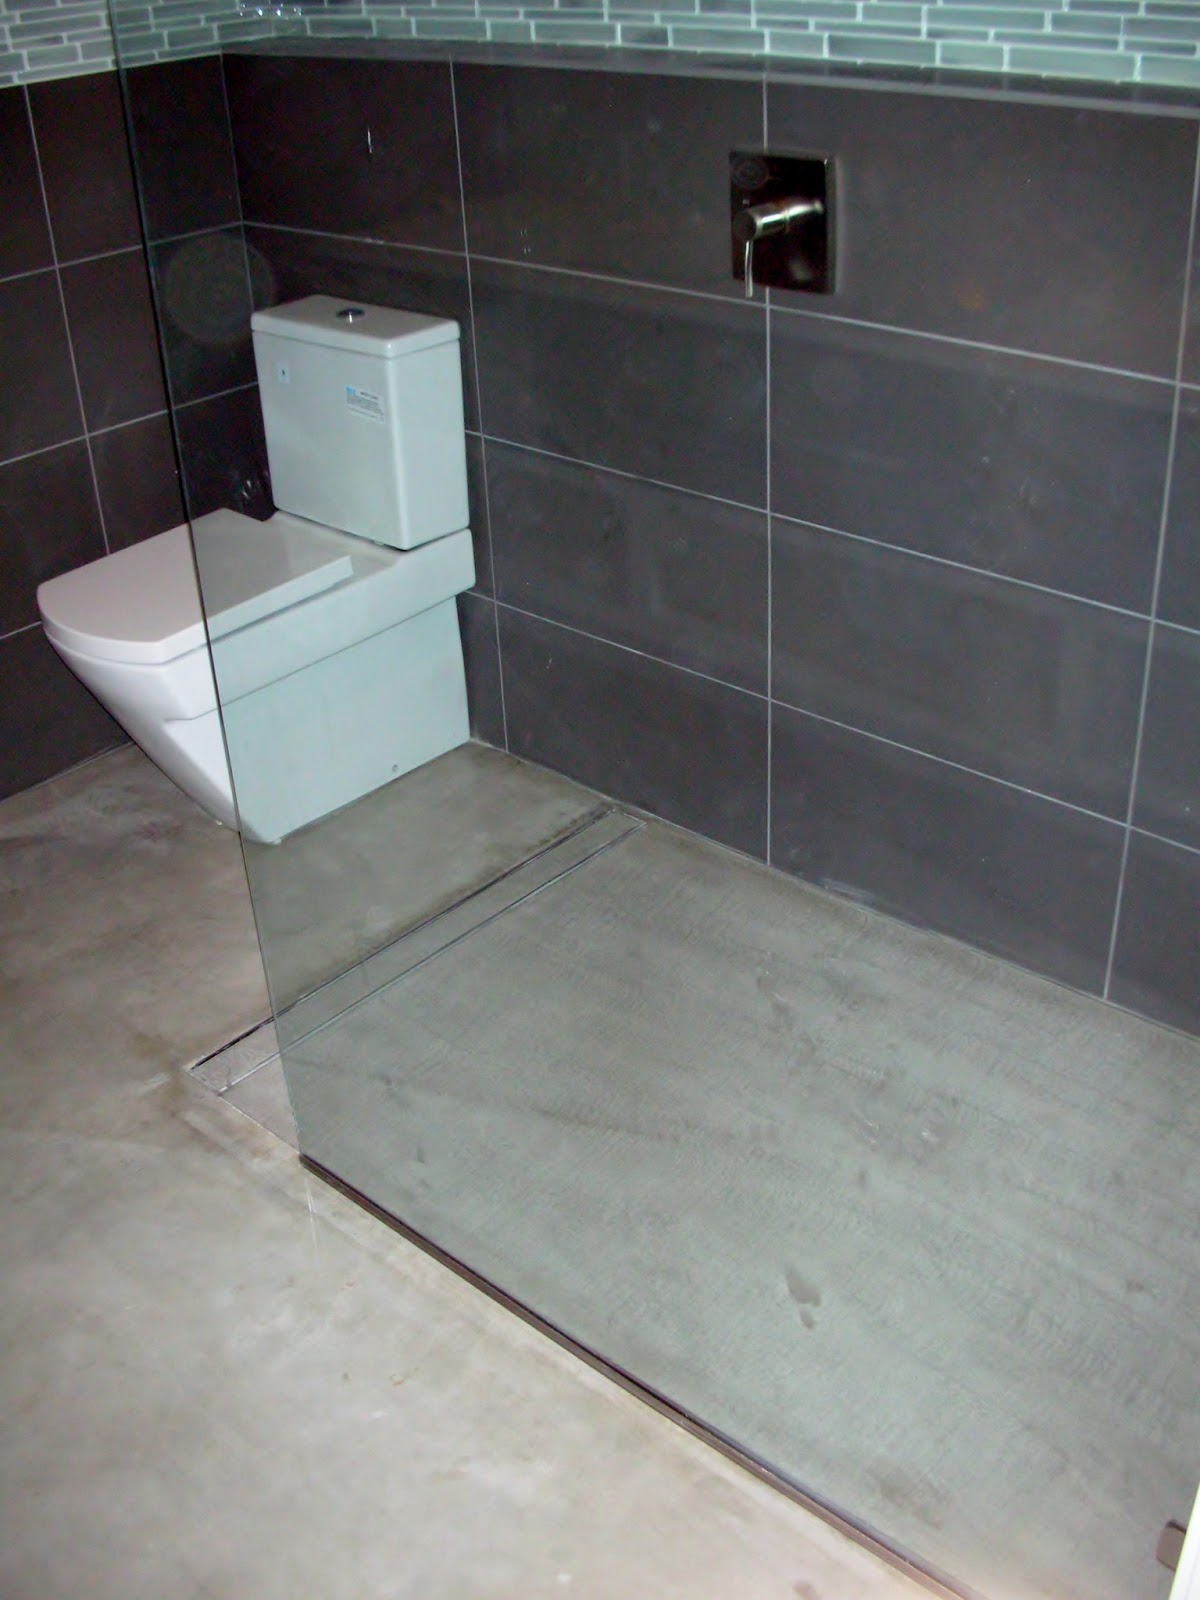 Bathroom Tile Floor Drain : Mode concrete modern open concept bathroom featuring a